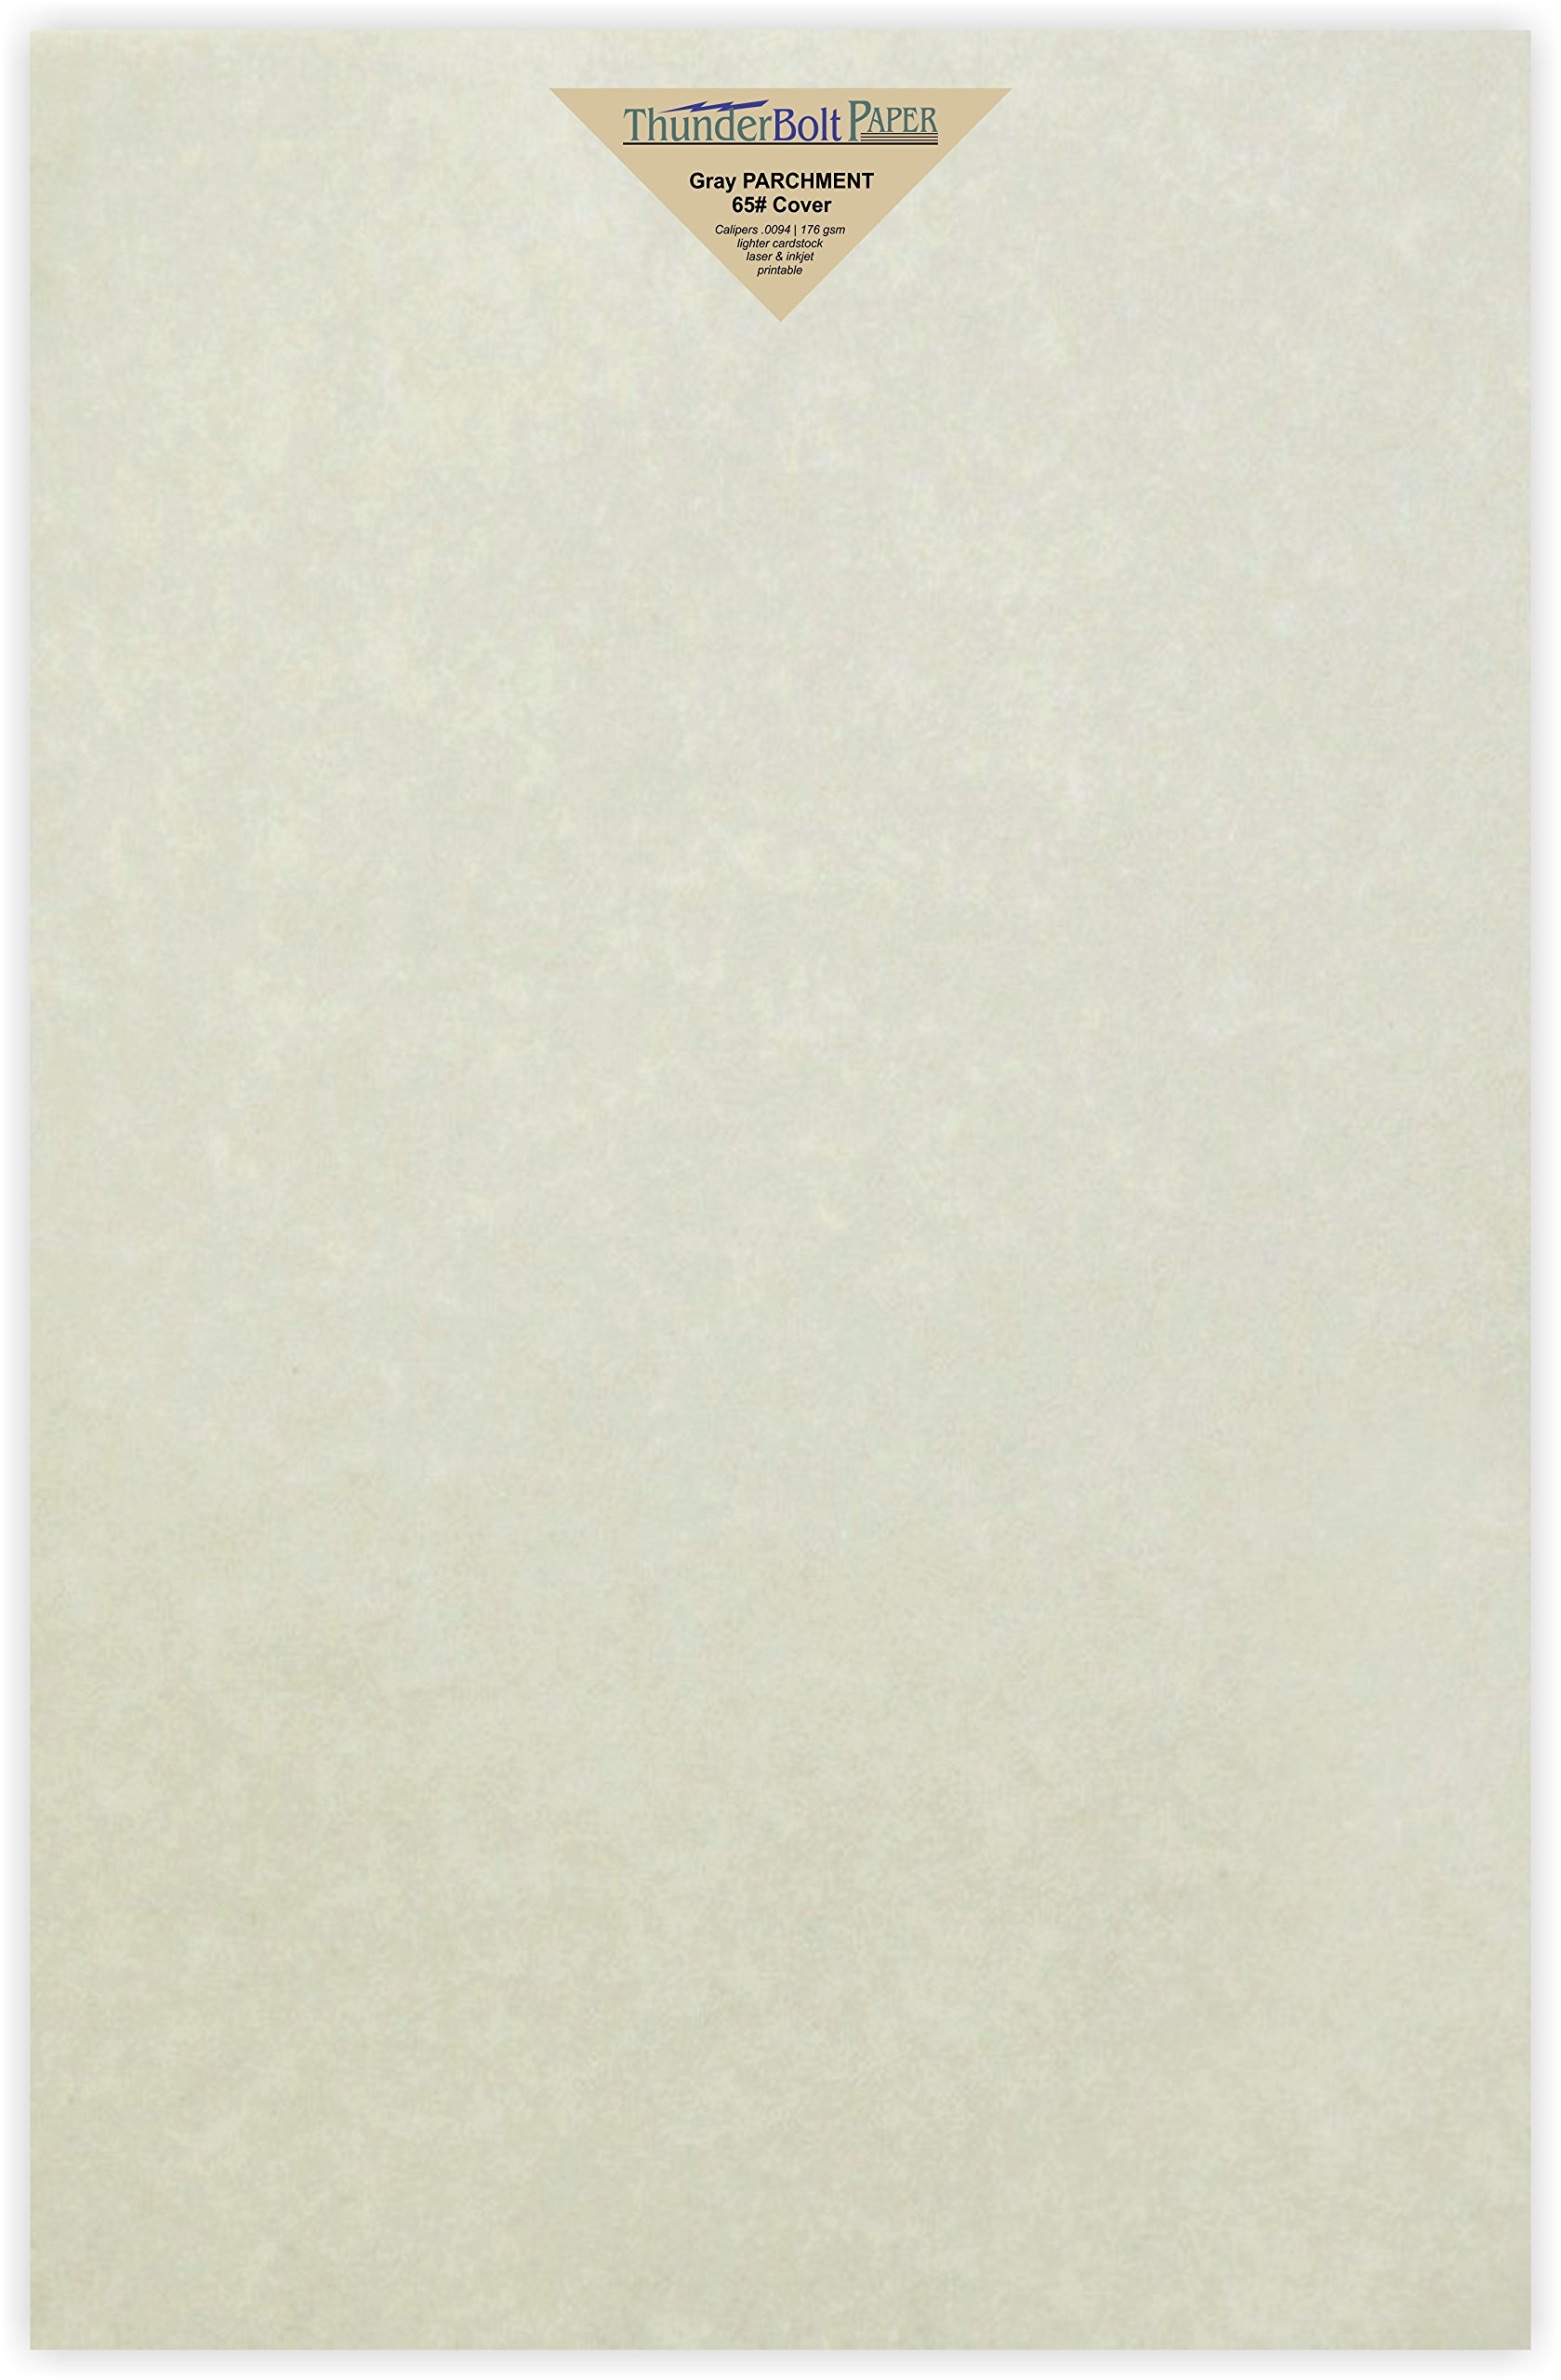 25 Gray Parchment 65lb Cover Weight Paper - 12'' X 18'' (12X18 Inches) Large|Poster Size - Printable Light Weight Cardstock Colored Sheets Old Parchment Semblance by ThunderBolt Paper